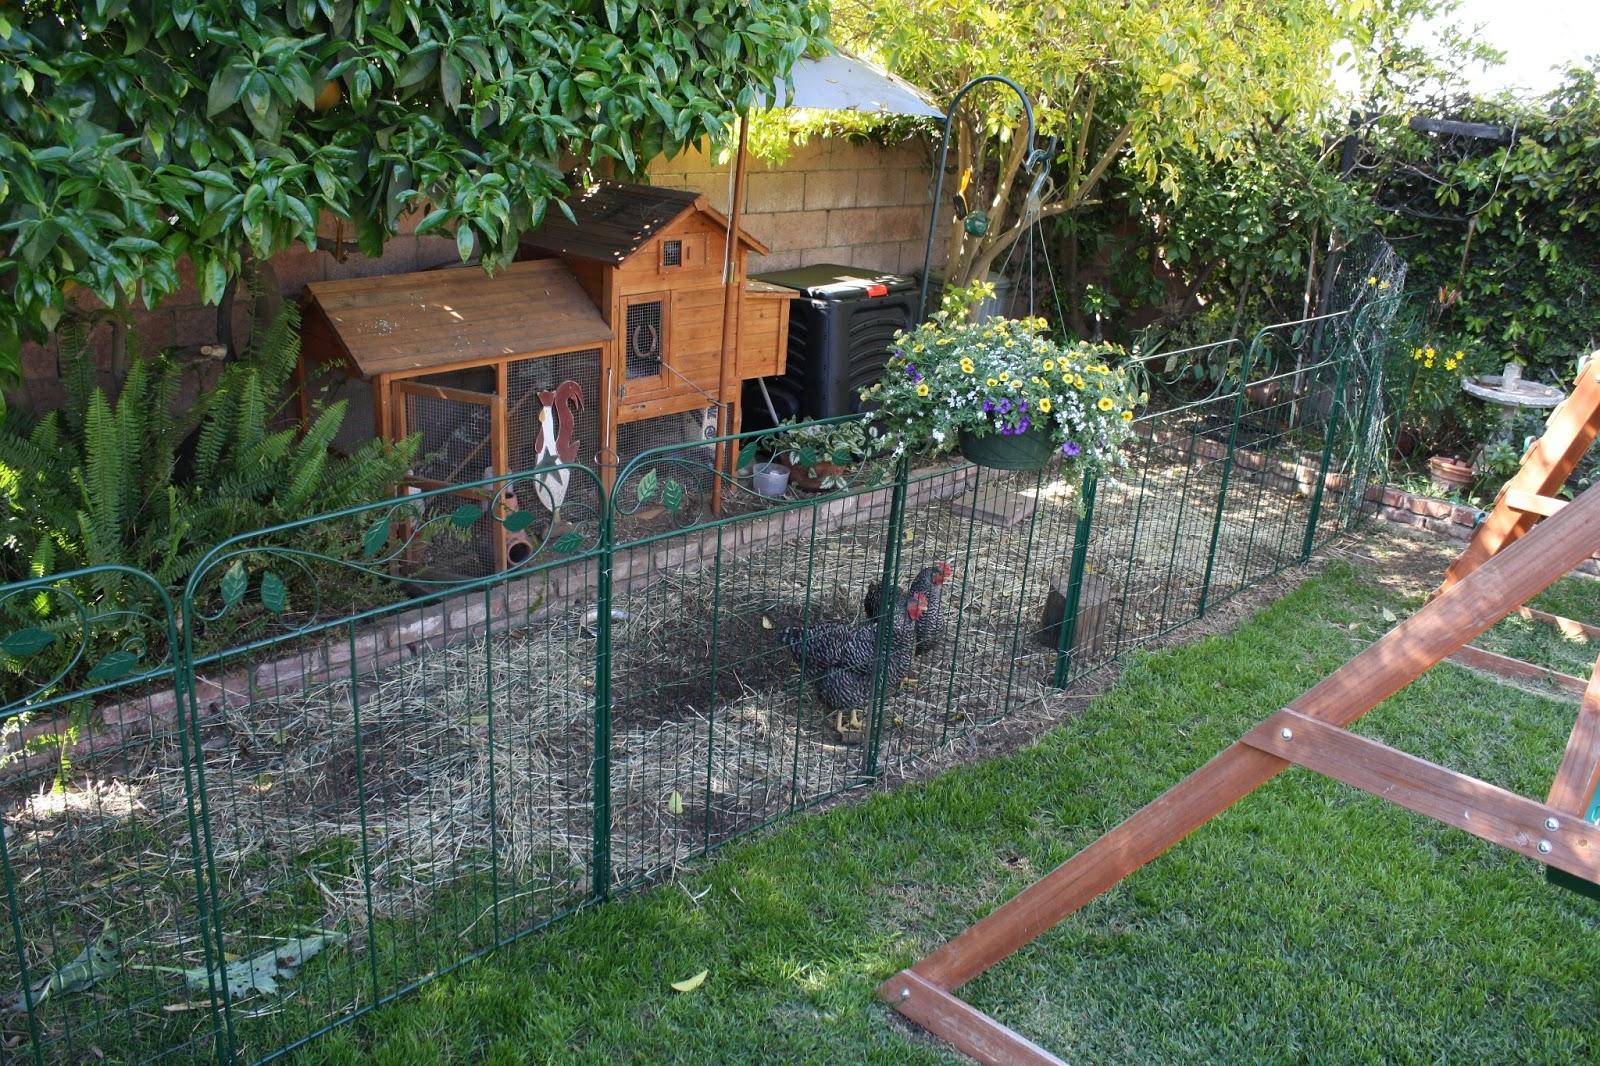 Sunny Simple Life: The New Chicken Fence